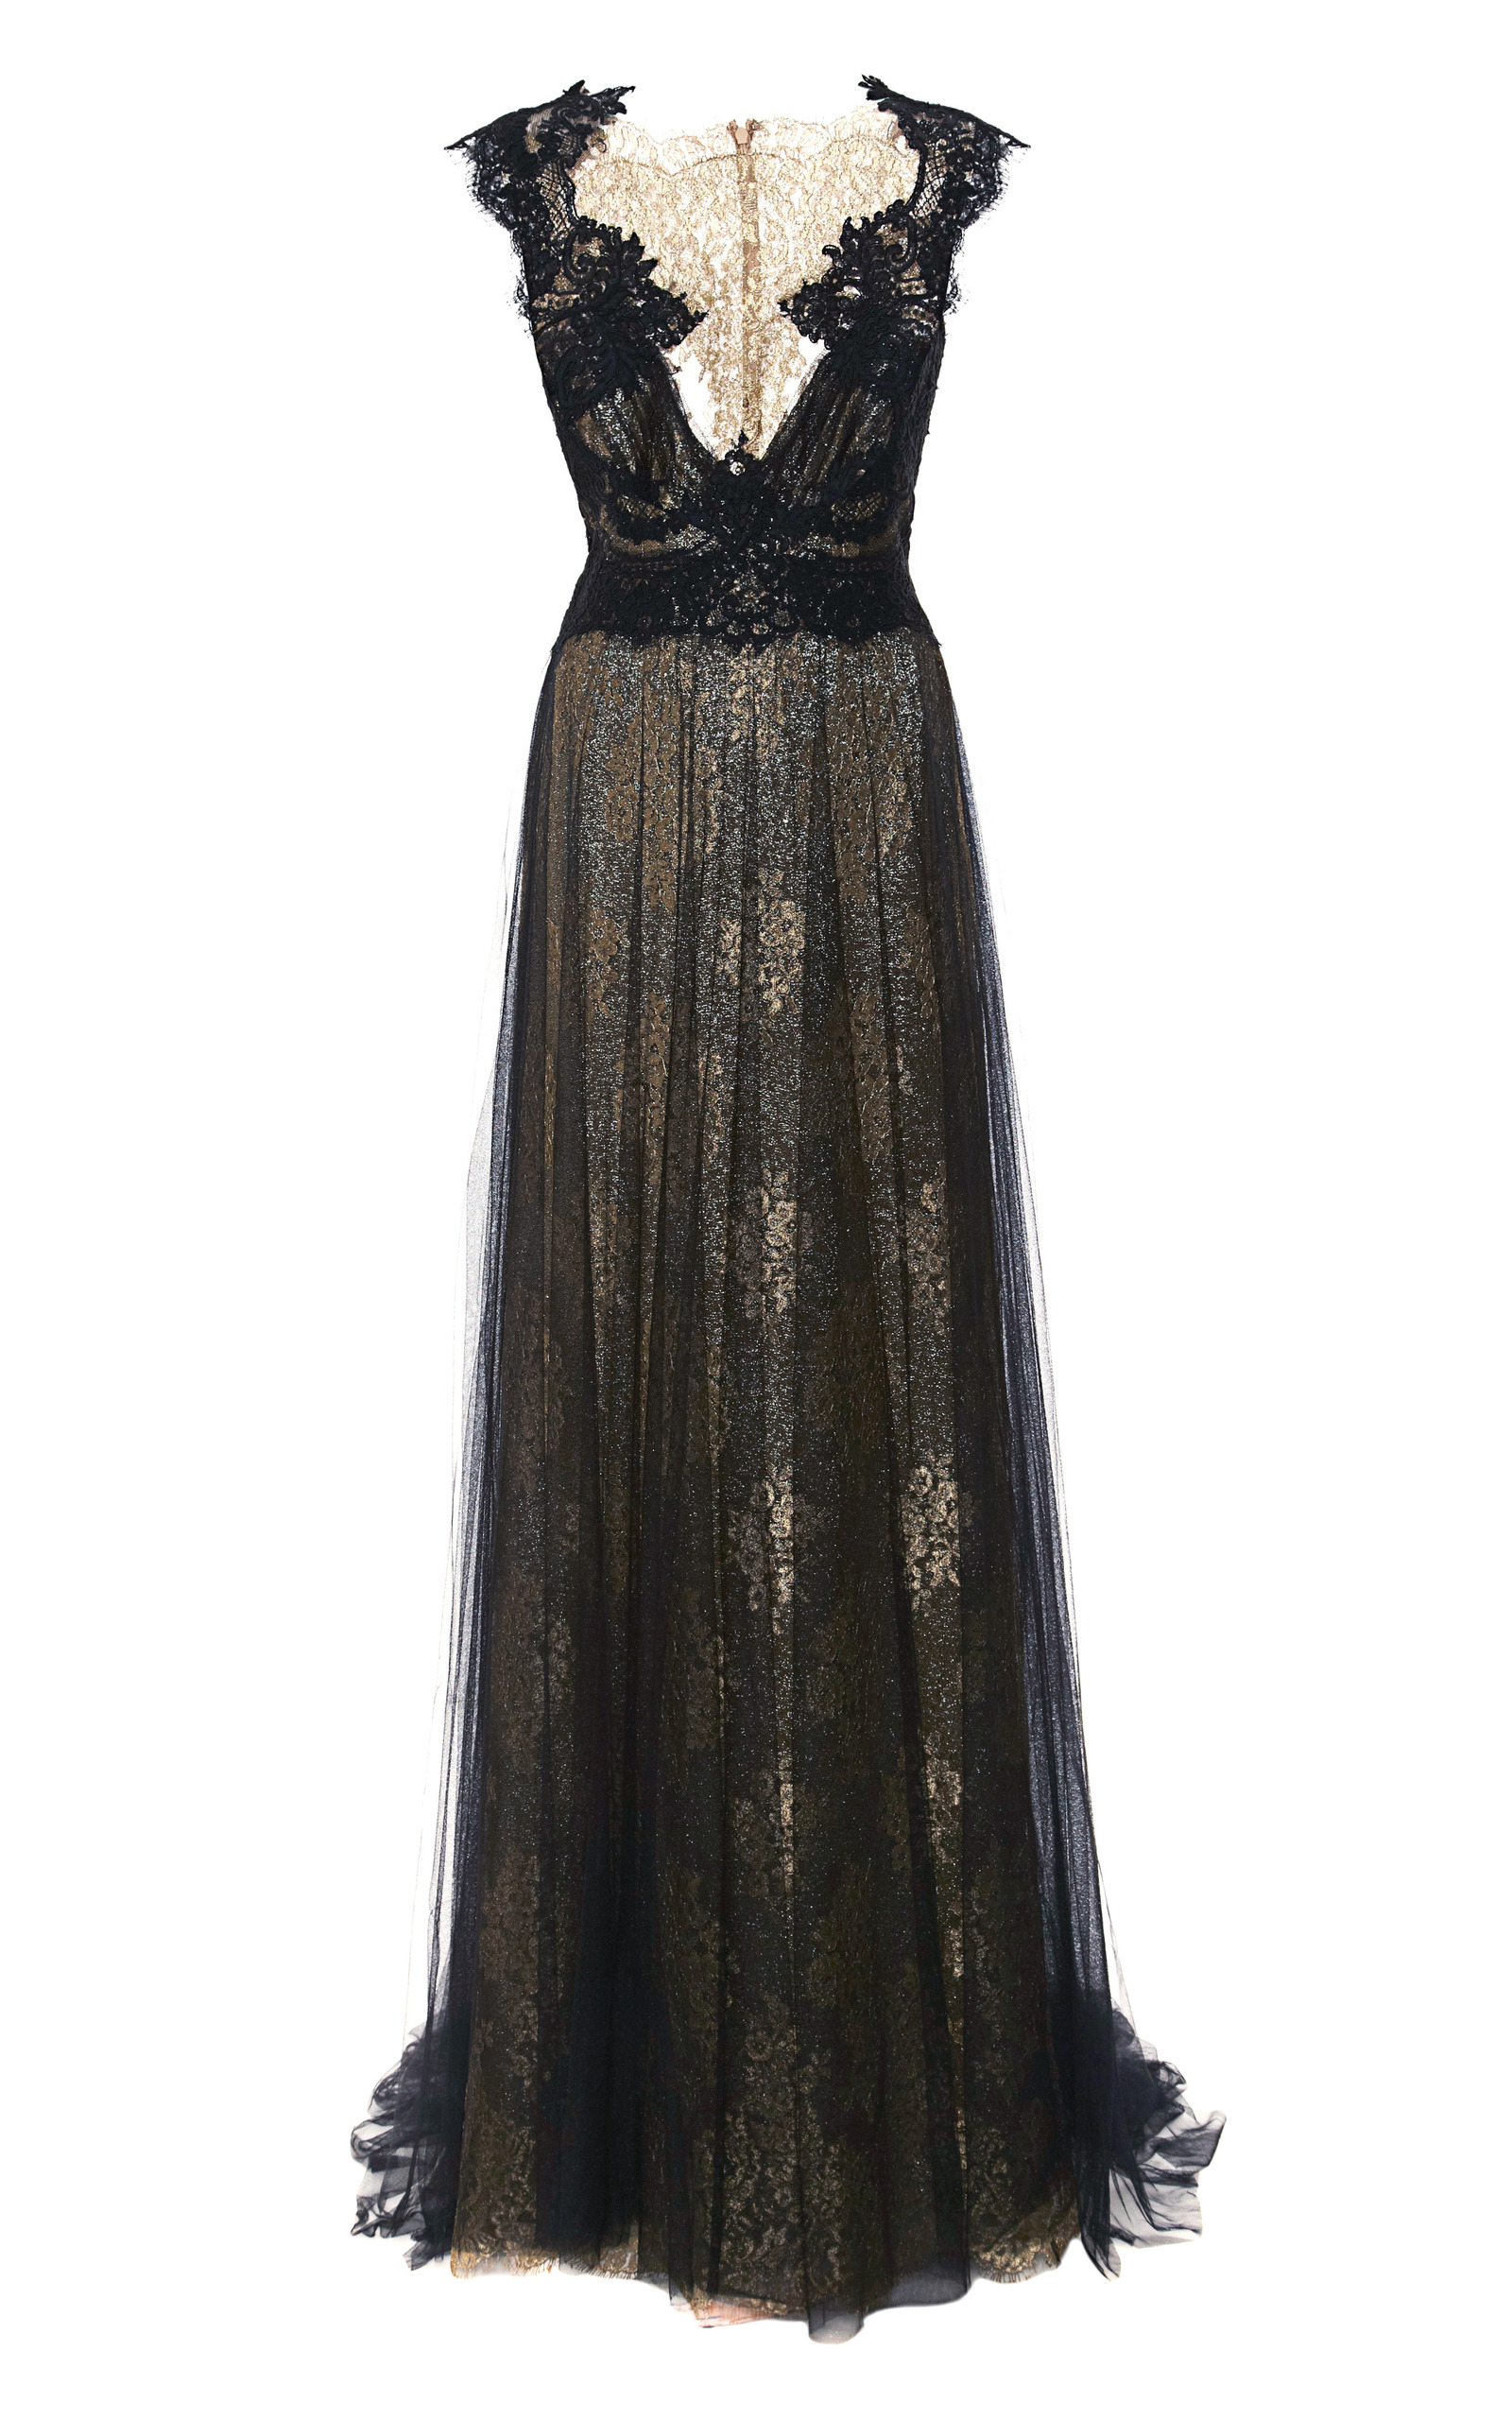 5f11f29f MarchesaEngineered Metallic Lace Column Gown With Tulle Overlay. CLOSE.  Loading